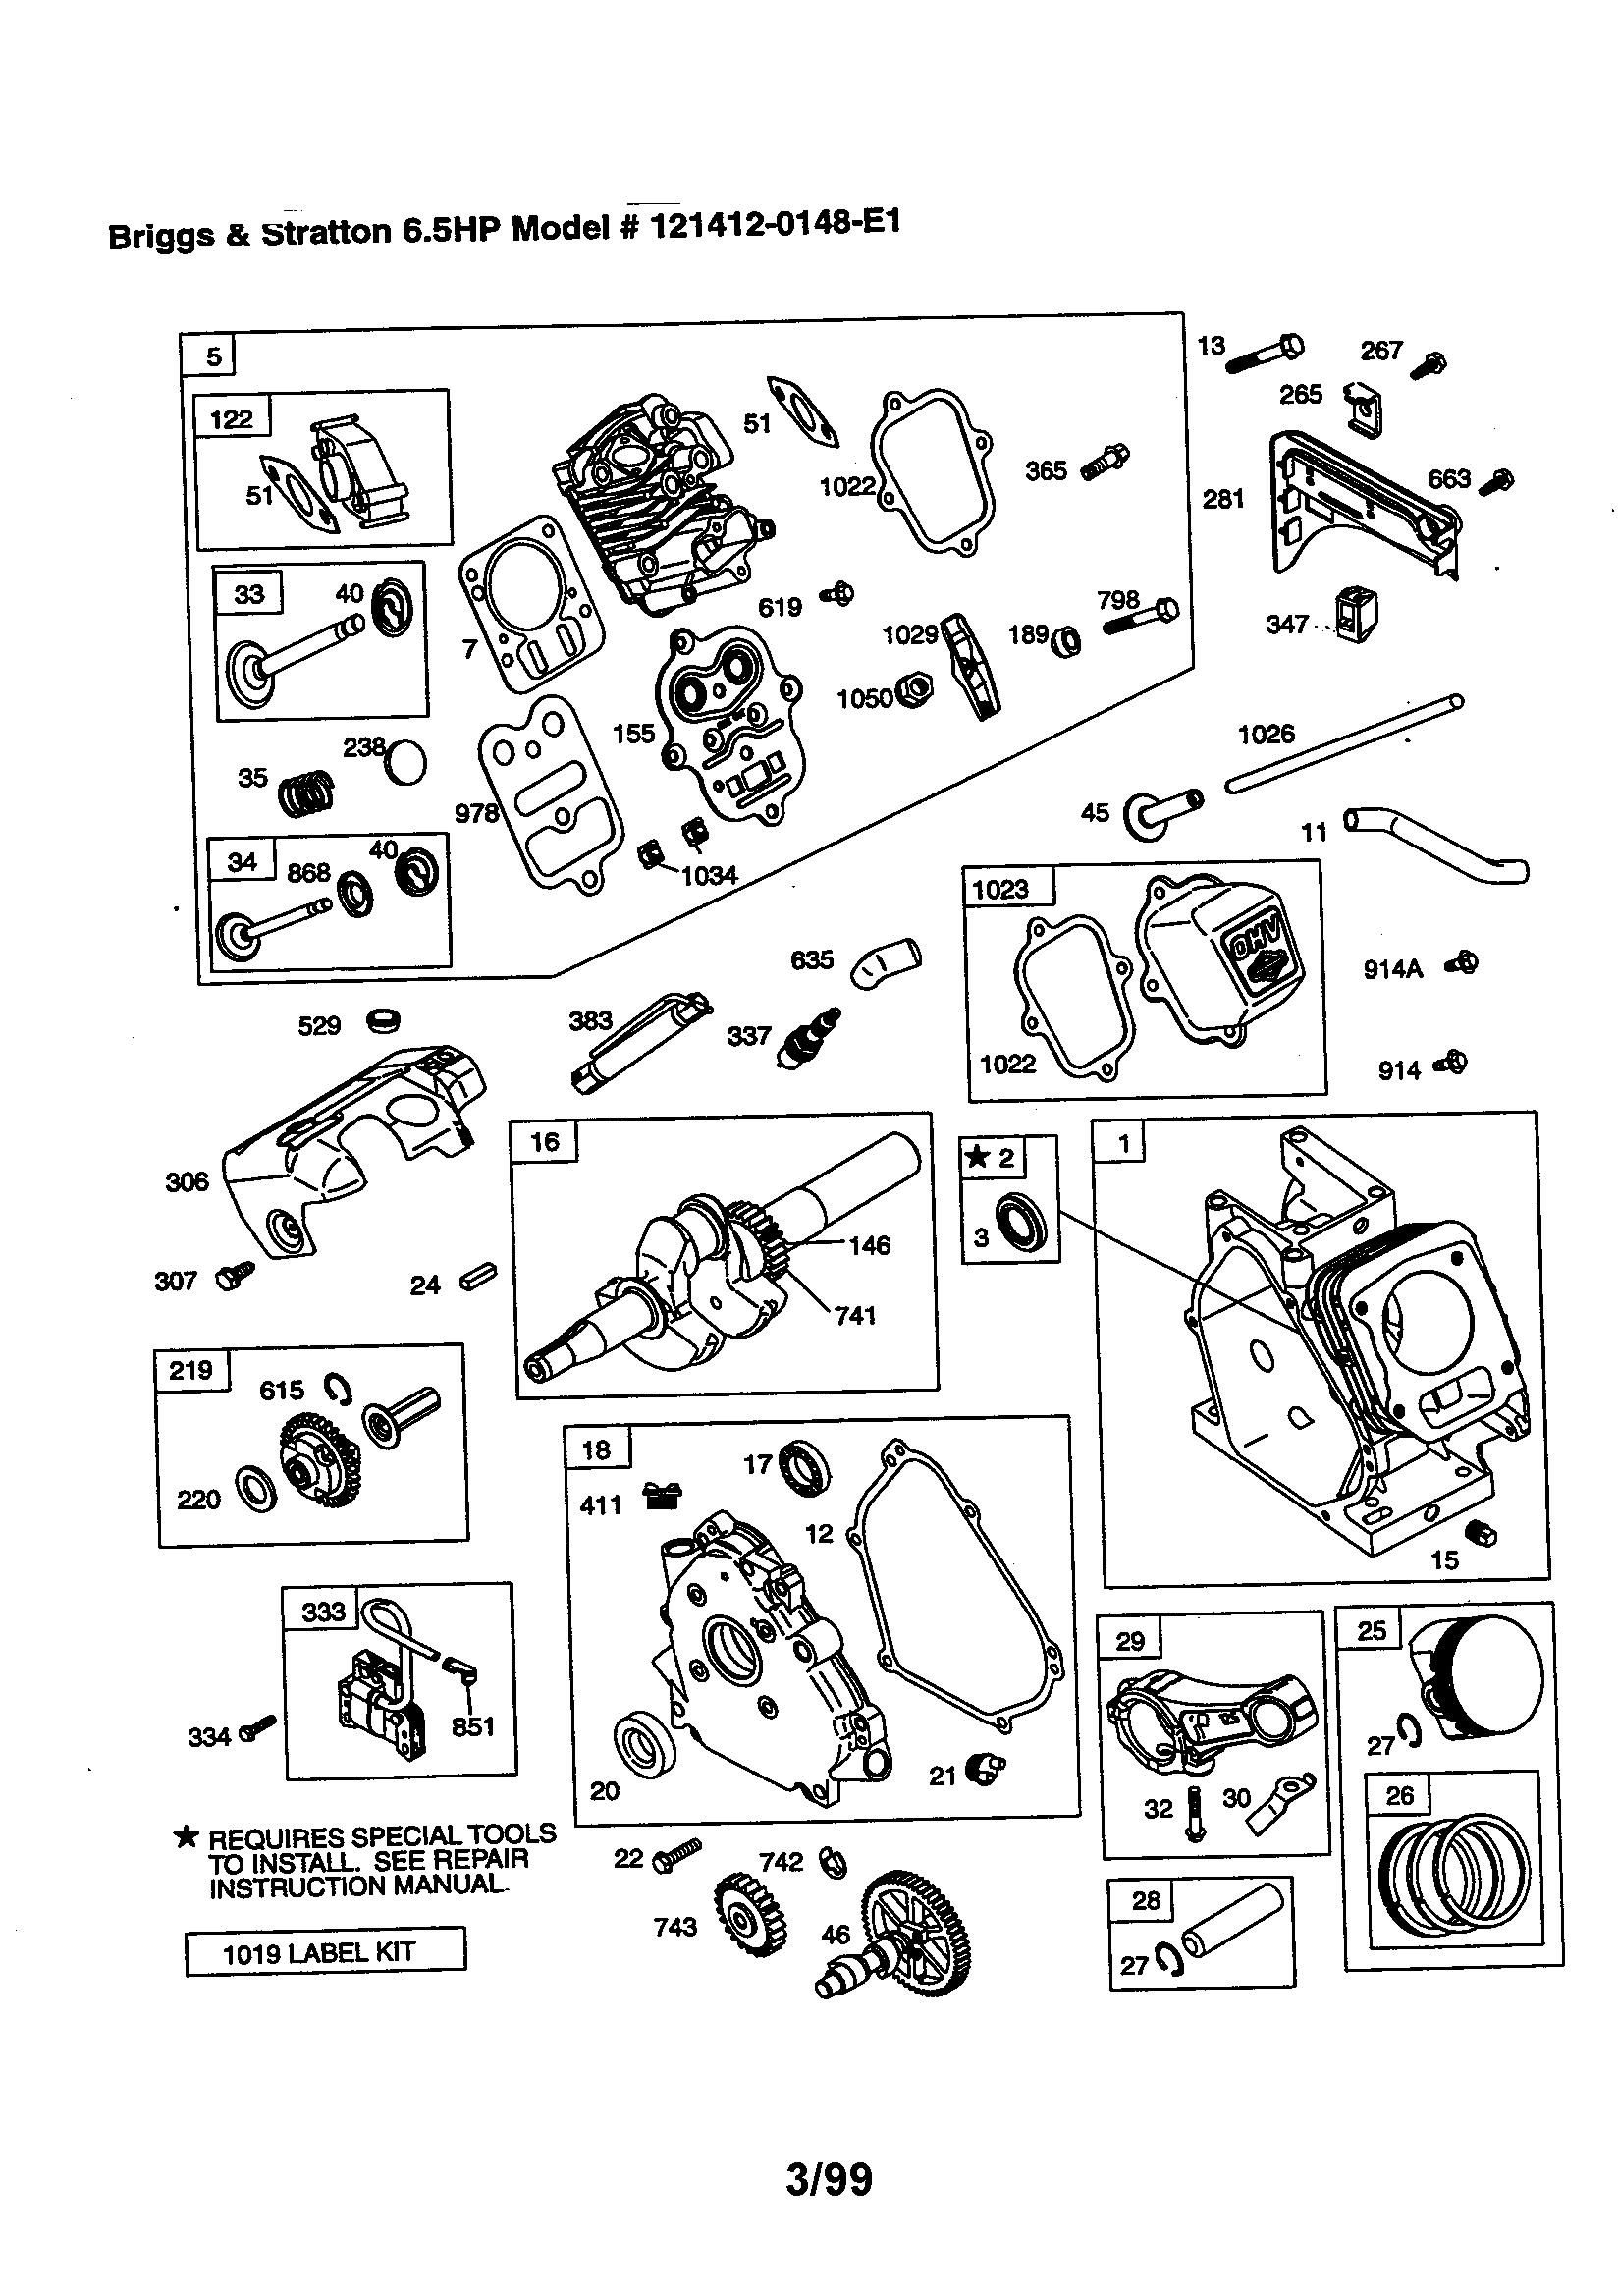 briggs and stratton 3 5 hp carburetor diagram home computer network 6 engine parts model 1214120148e1